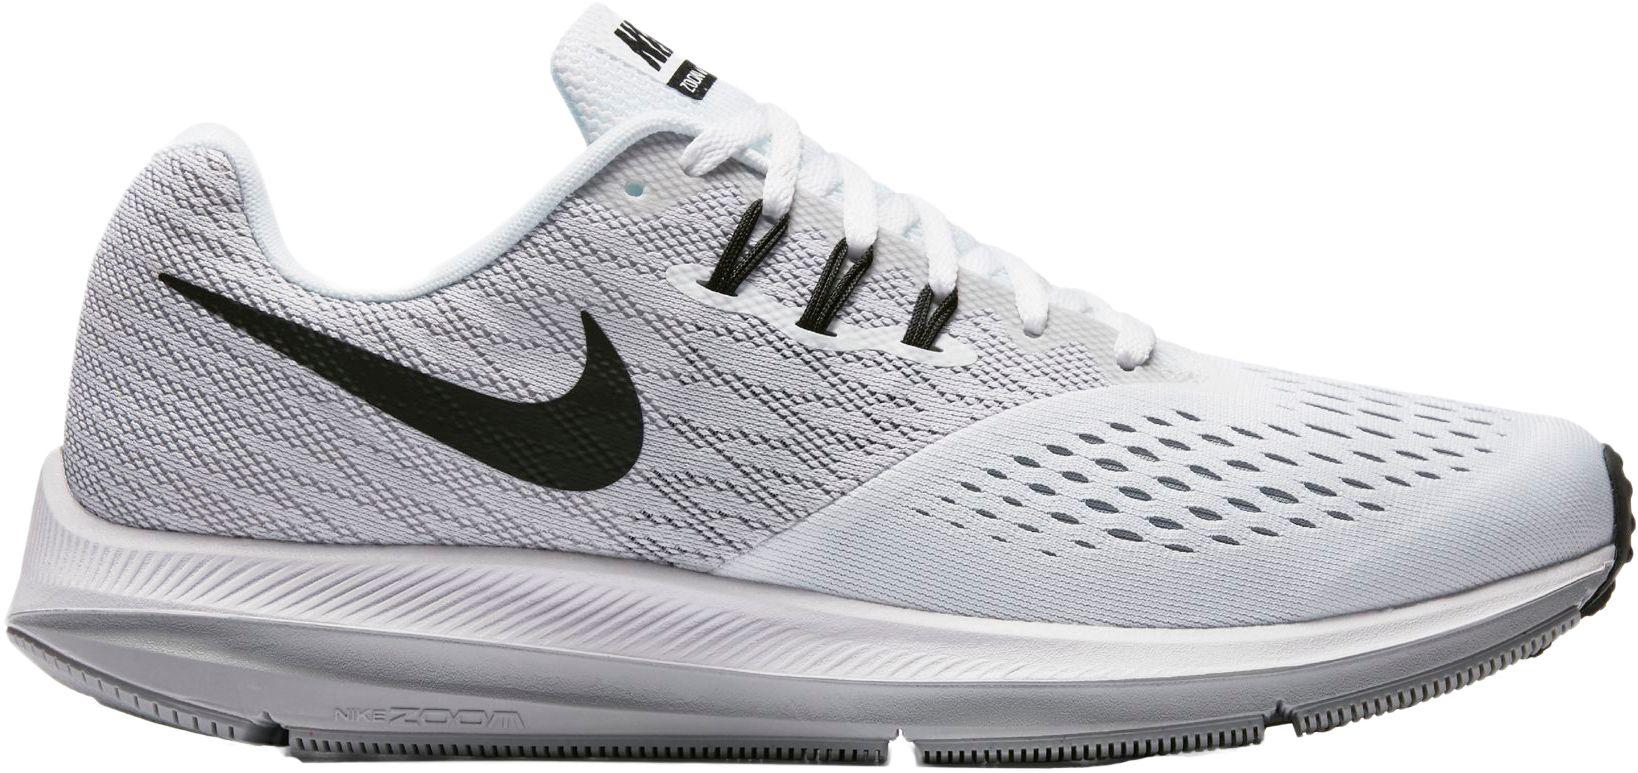 new style 5dc8e 09202 Nike - White Air Zoom Winflo 4 Running Shoes for Men - Lyst